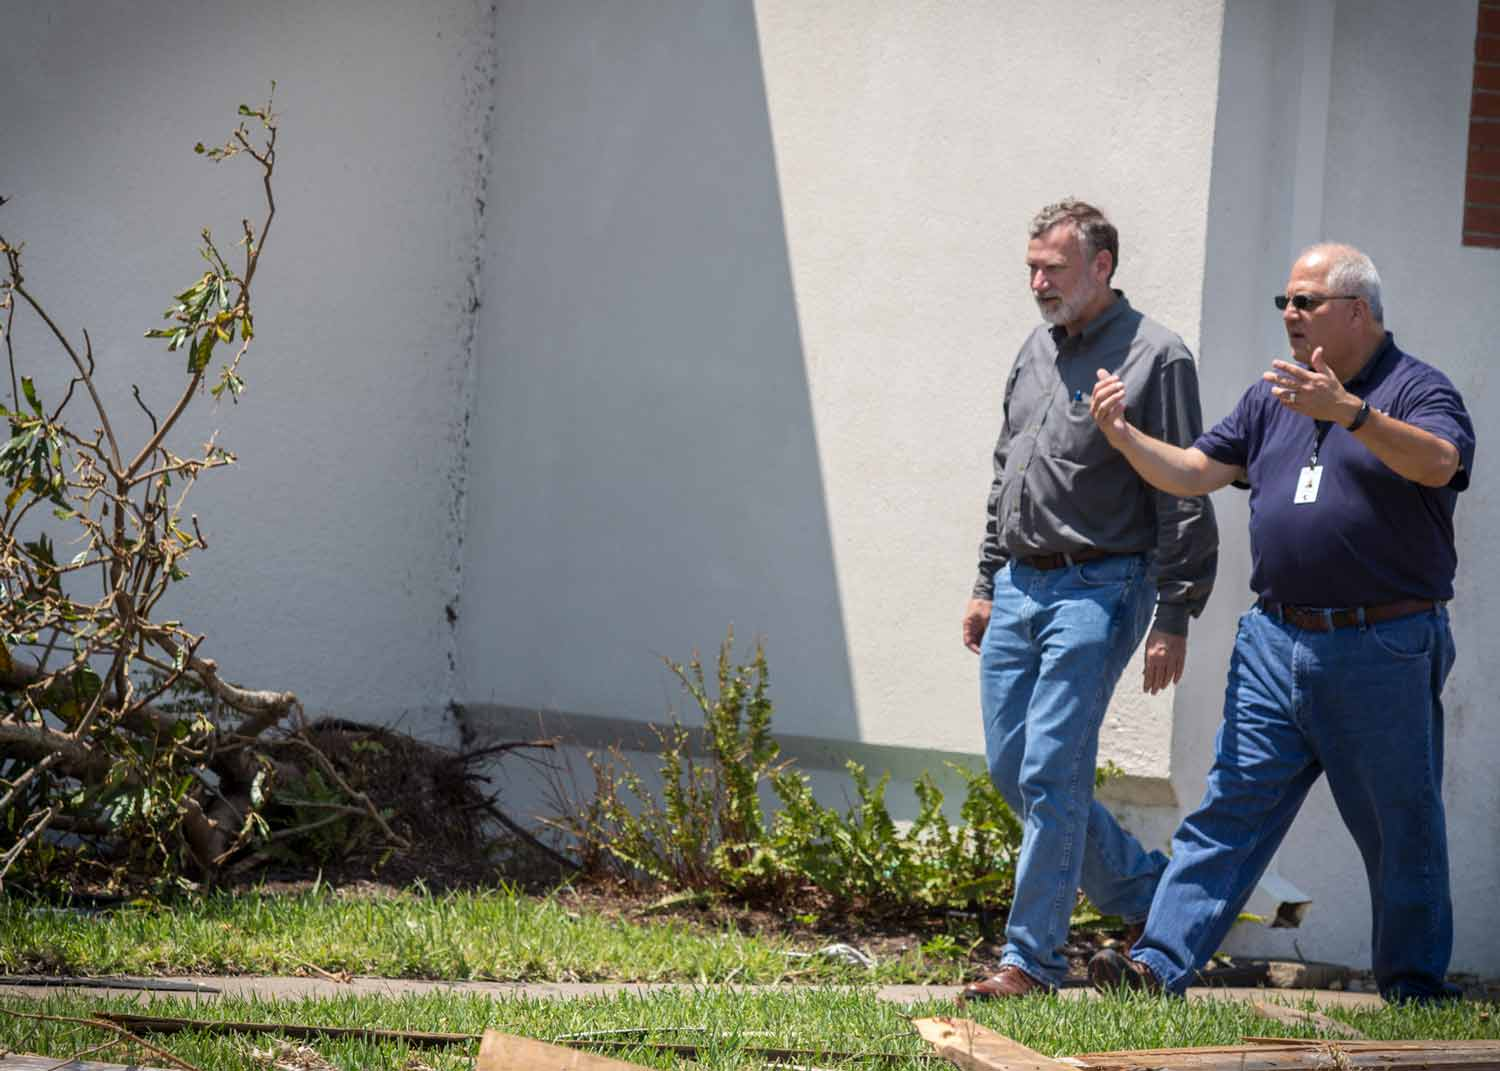 Robert Schnase, Bishop of the Rio Texas Annual Conference surveys damage at First UMC, Rockport, Texas with Director of Outreach Vitality, Abel Vega.